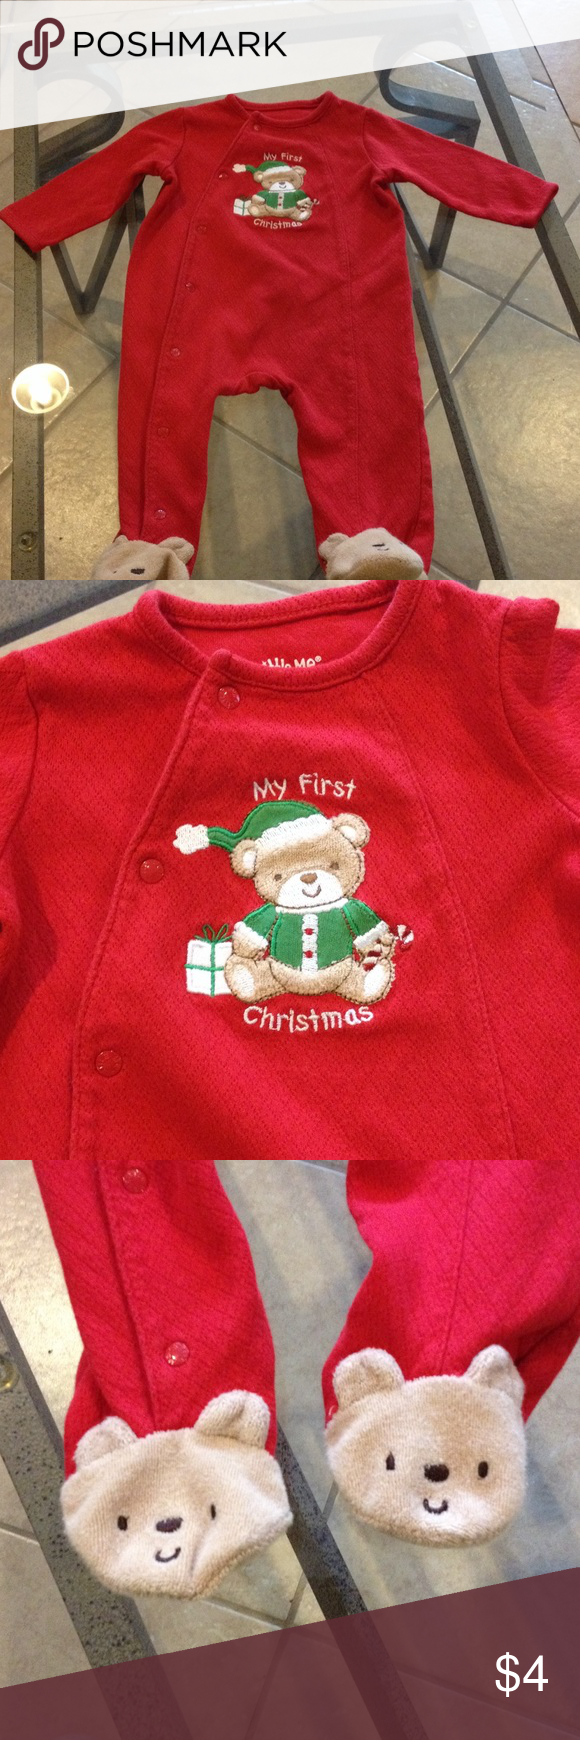 Boys 6 months Little me Christmas outfit Boys 6 months Little me Christmas outfit good condition Little Me One Pieces